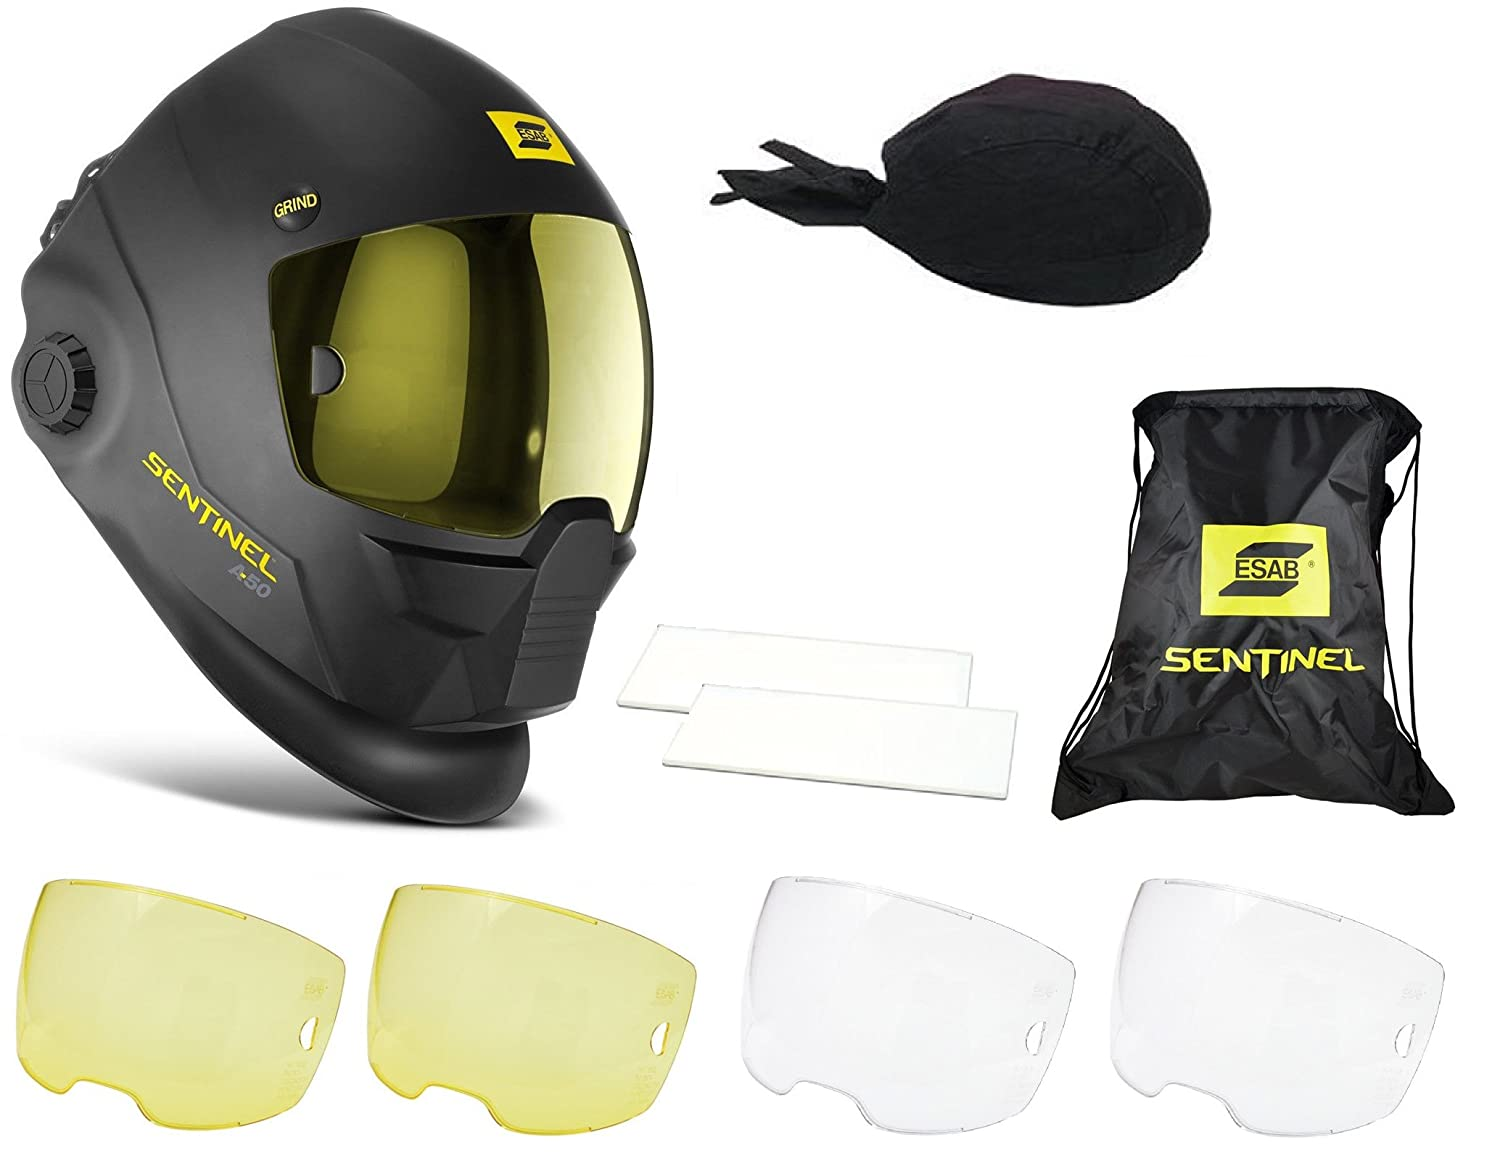 ESAB Halo Sentinel A50 Automatic Welding Helmet 0700000800 With FREE Accessories - - Amazon.com